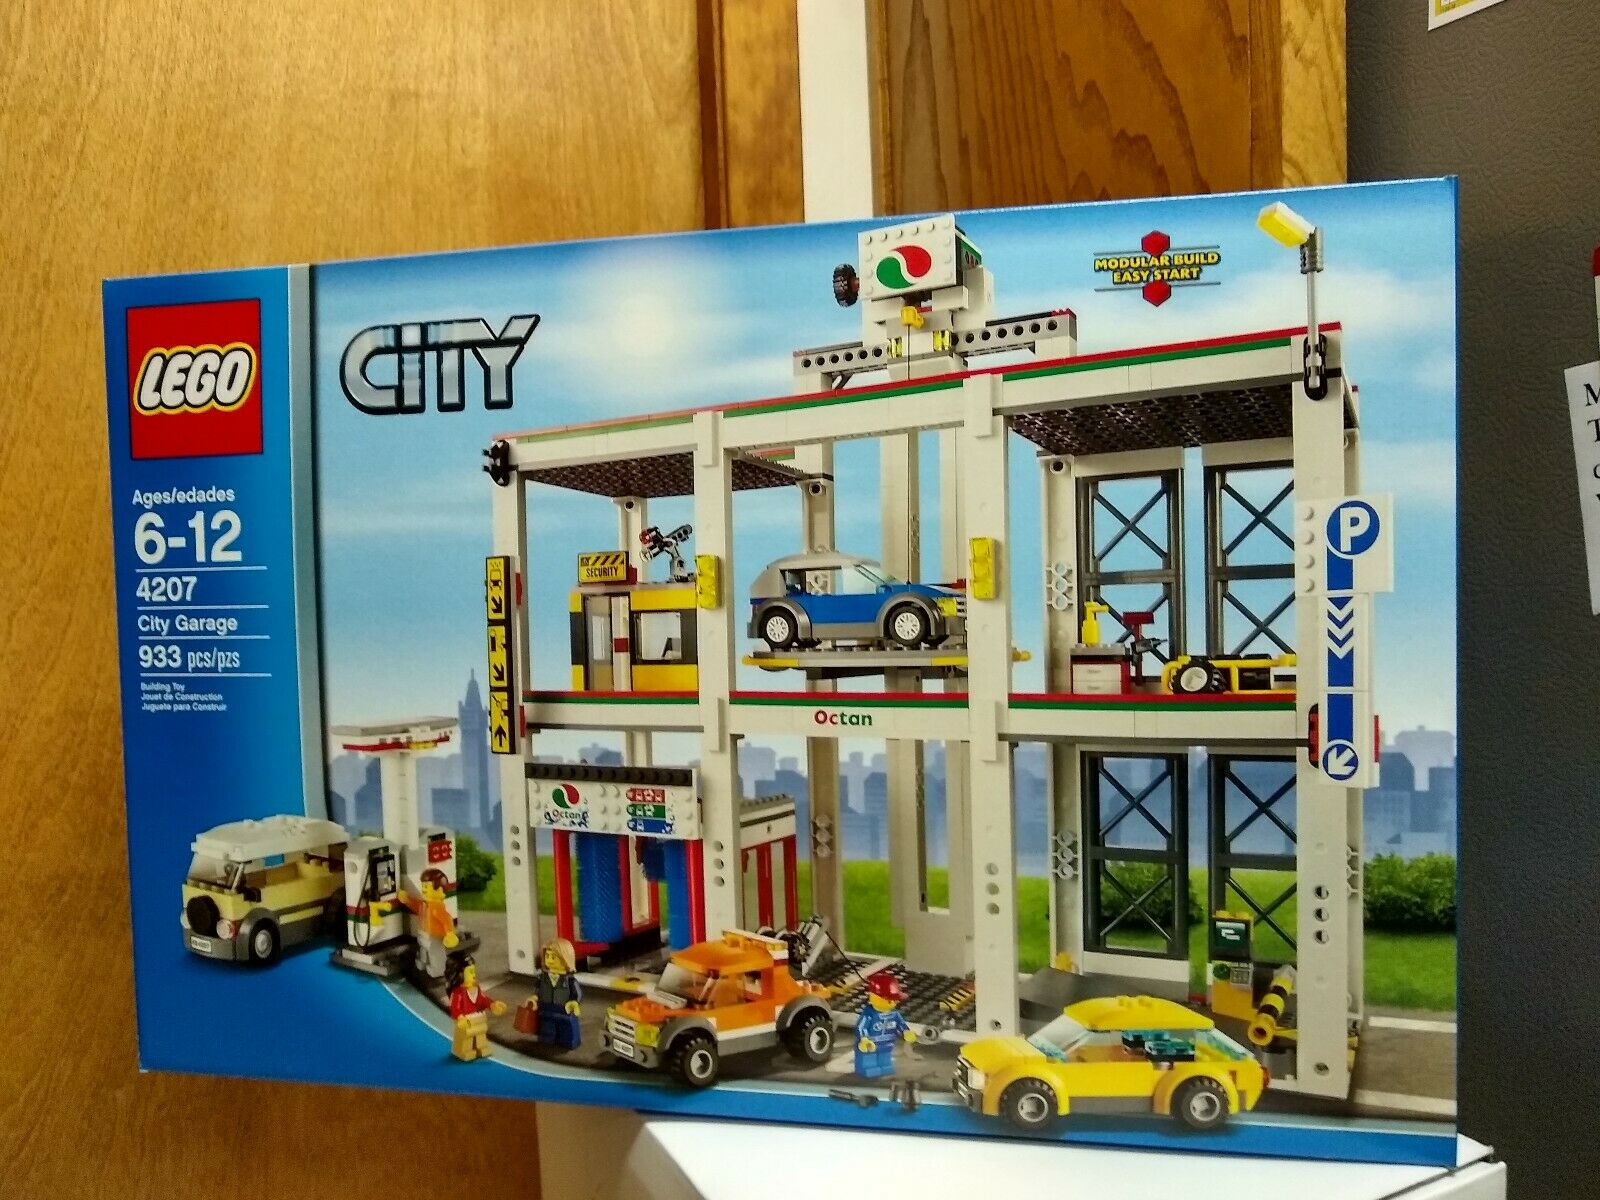 NEW LEGO 4207 CITY GARAGE BUILDING